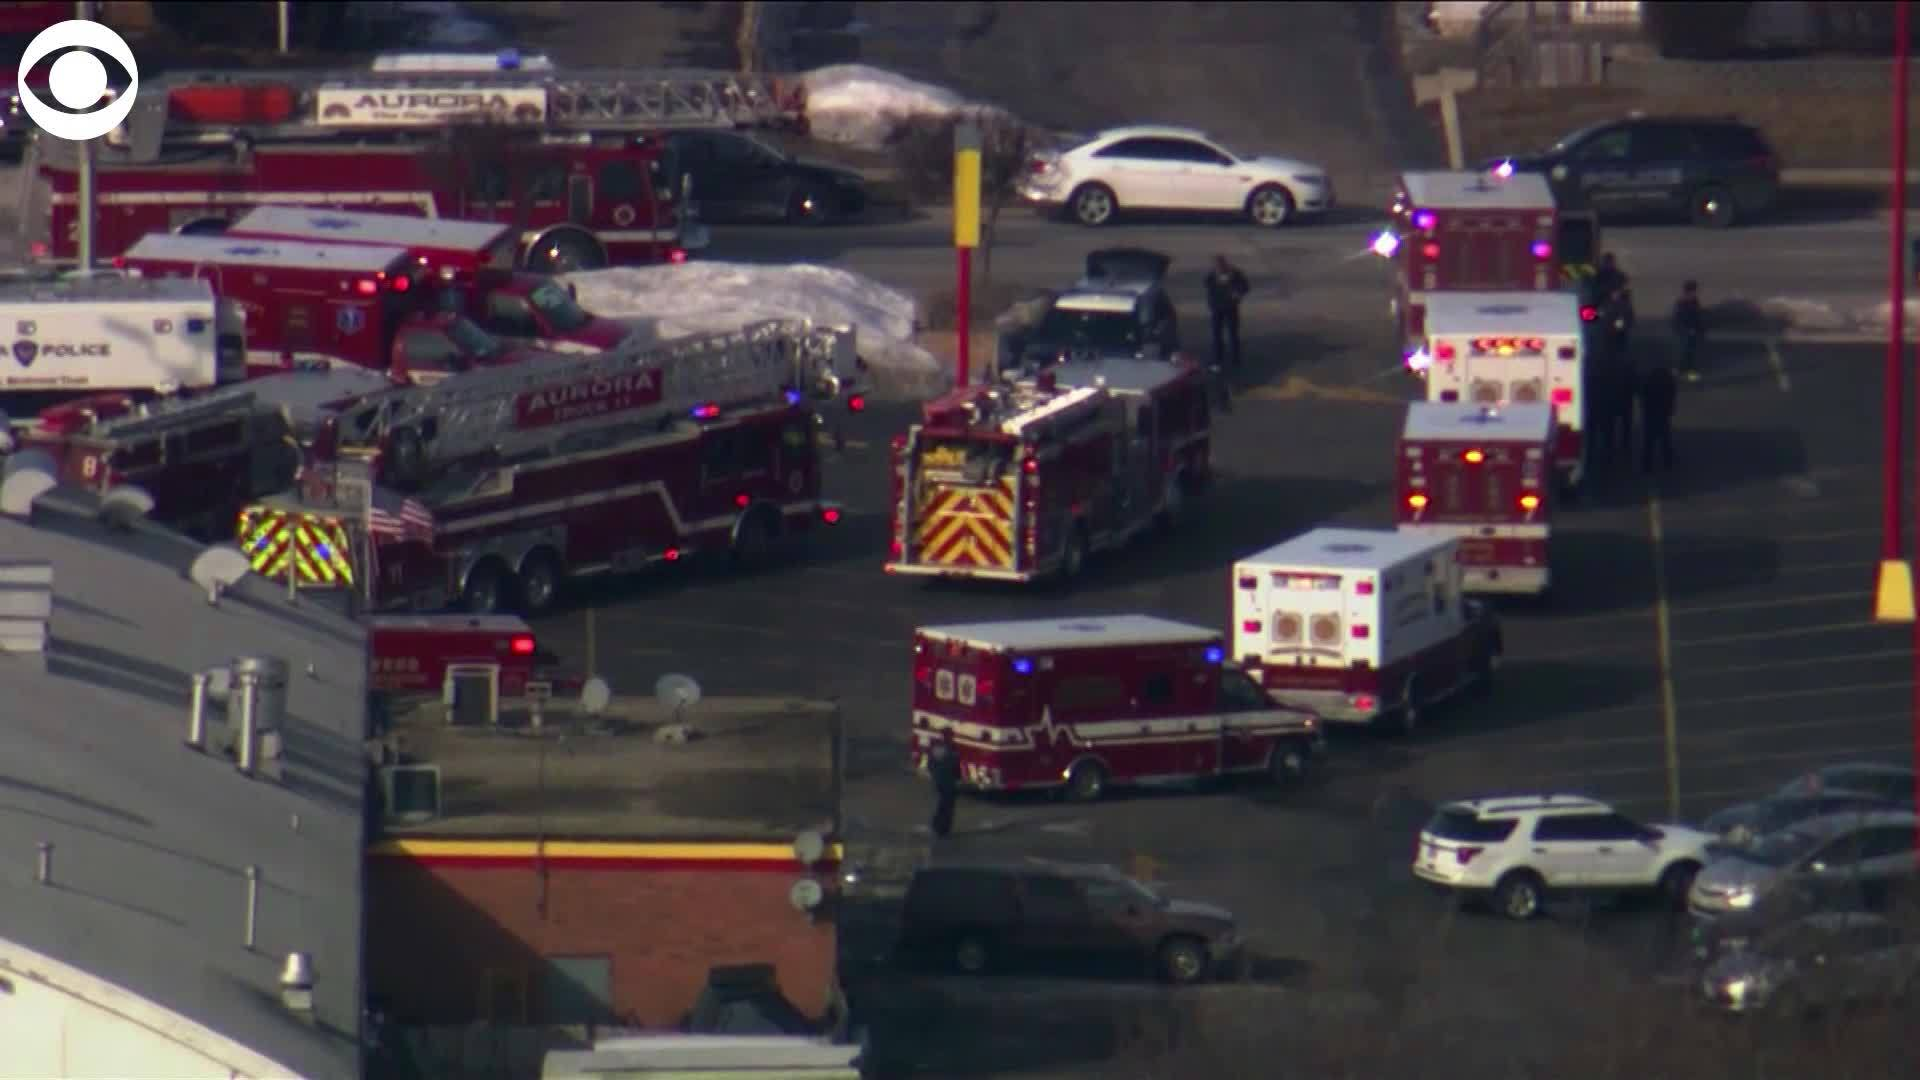 VIDEO NOW: Active Shooter Situation in Illinois